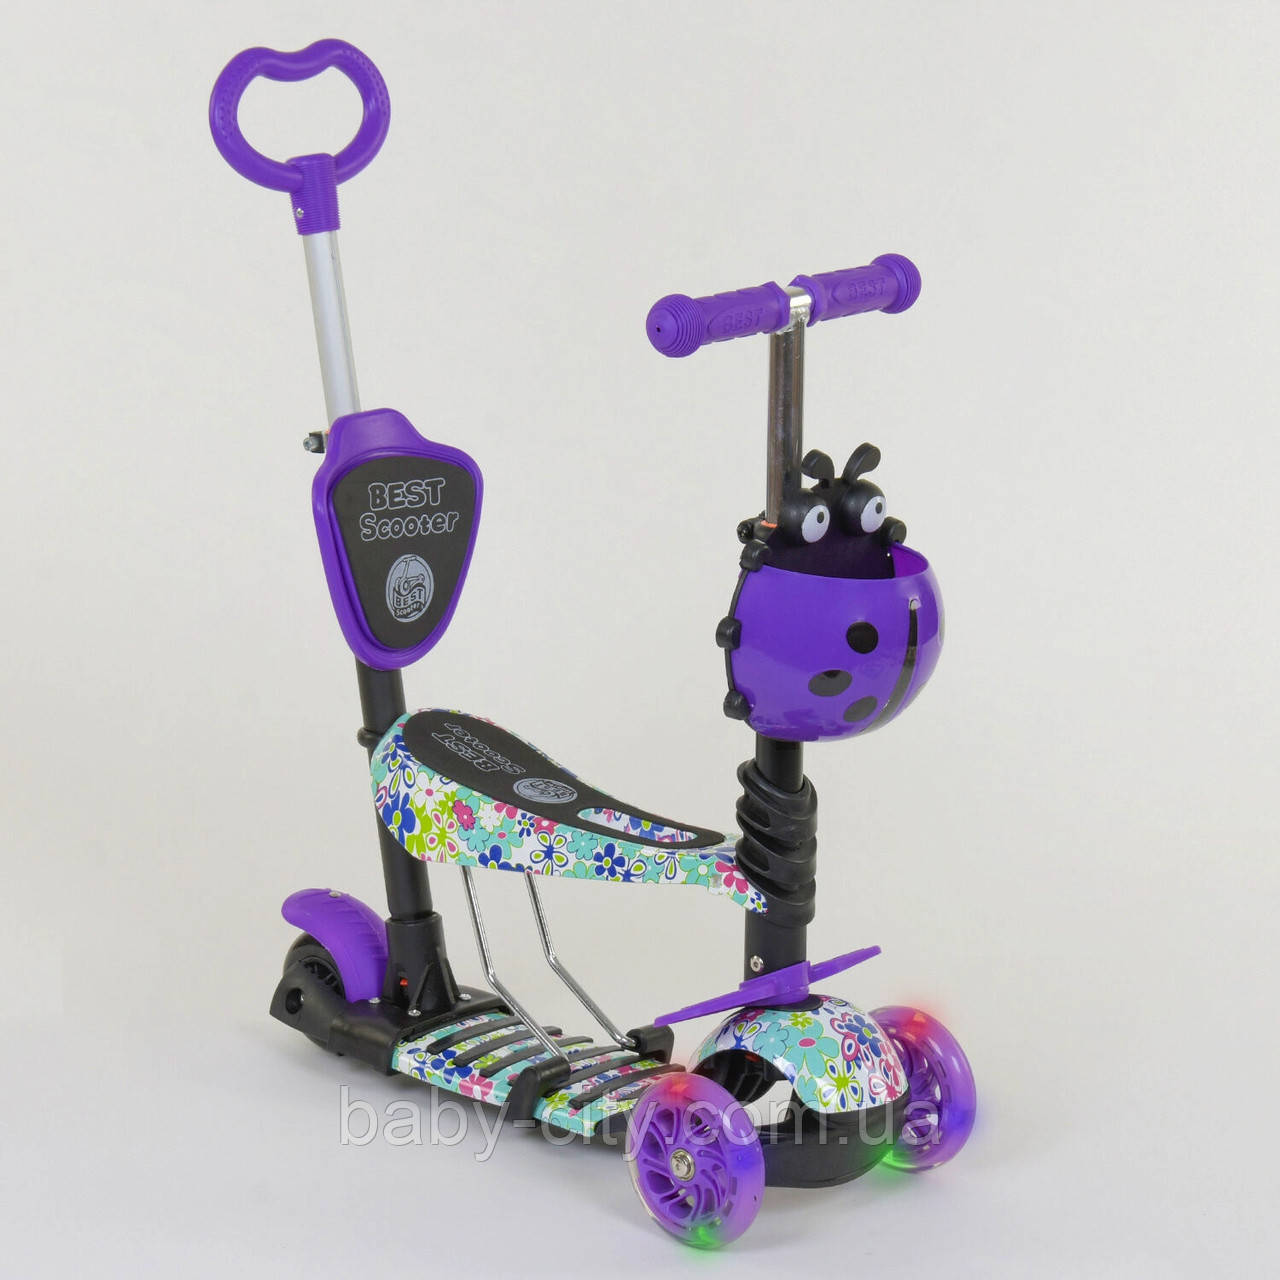 Самокат Best Scooter 5в1 68995 Абстракция